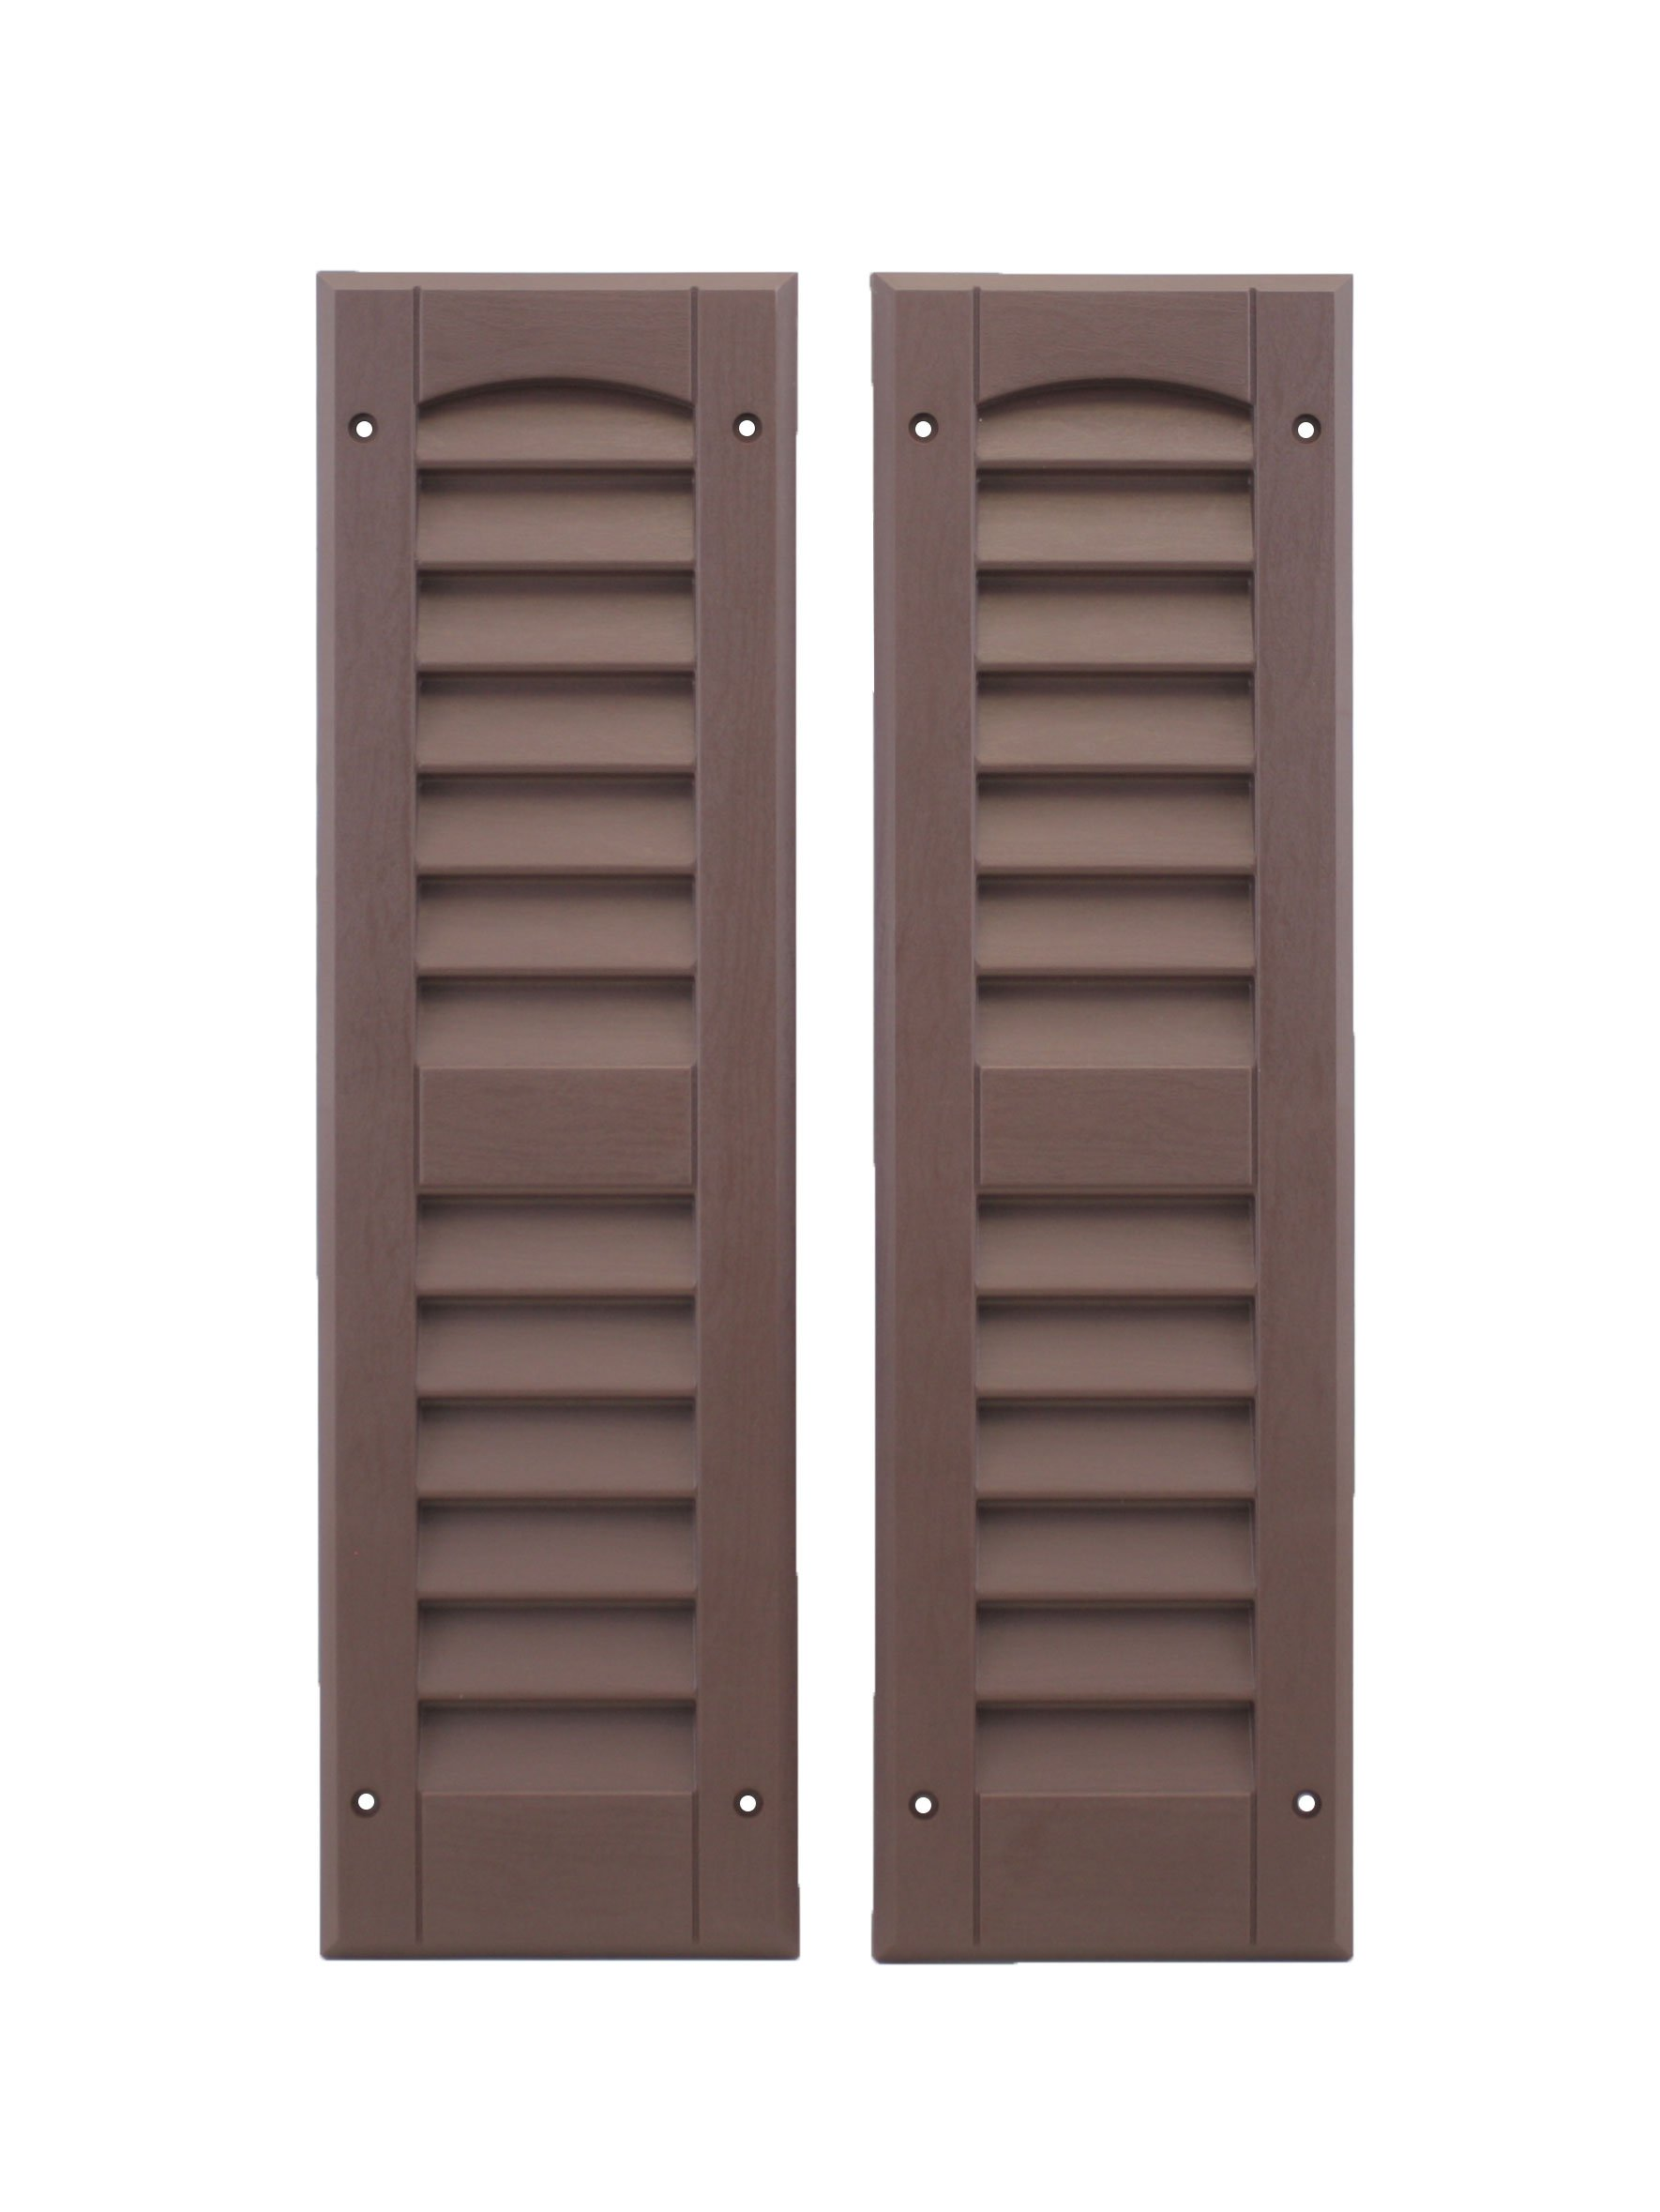 Louvered Shed Shutter or Playhouse Shutter, Brown 6'' X 21'', 1 Pair